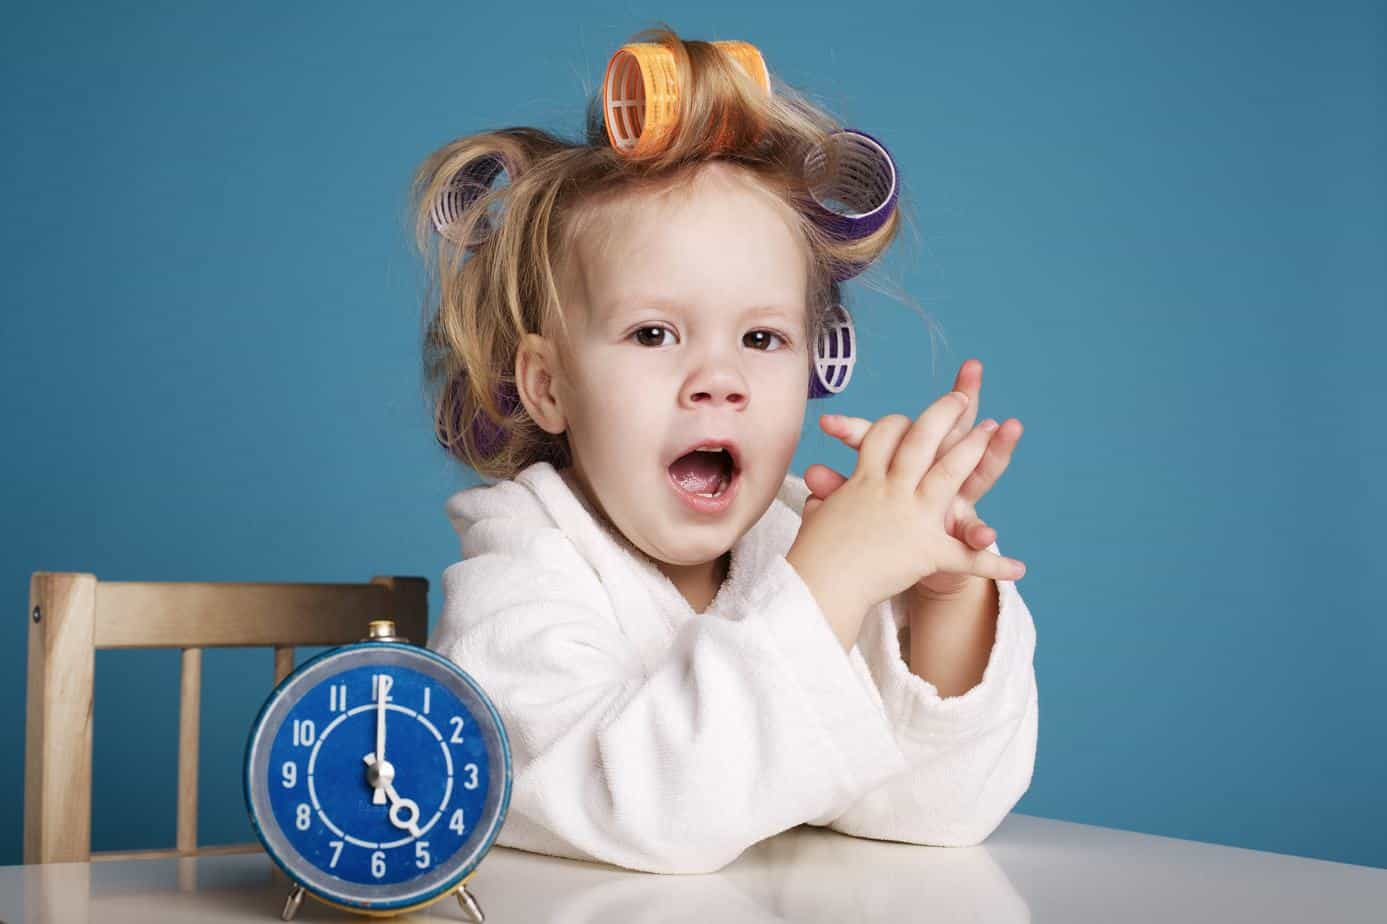 toddler sitting while yawning with alarm clock on table